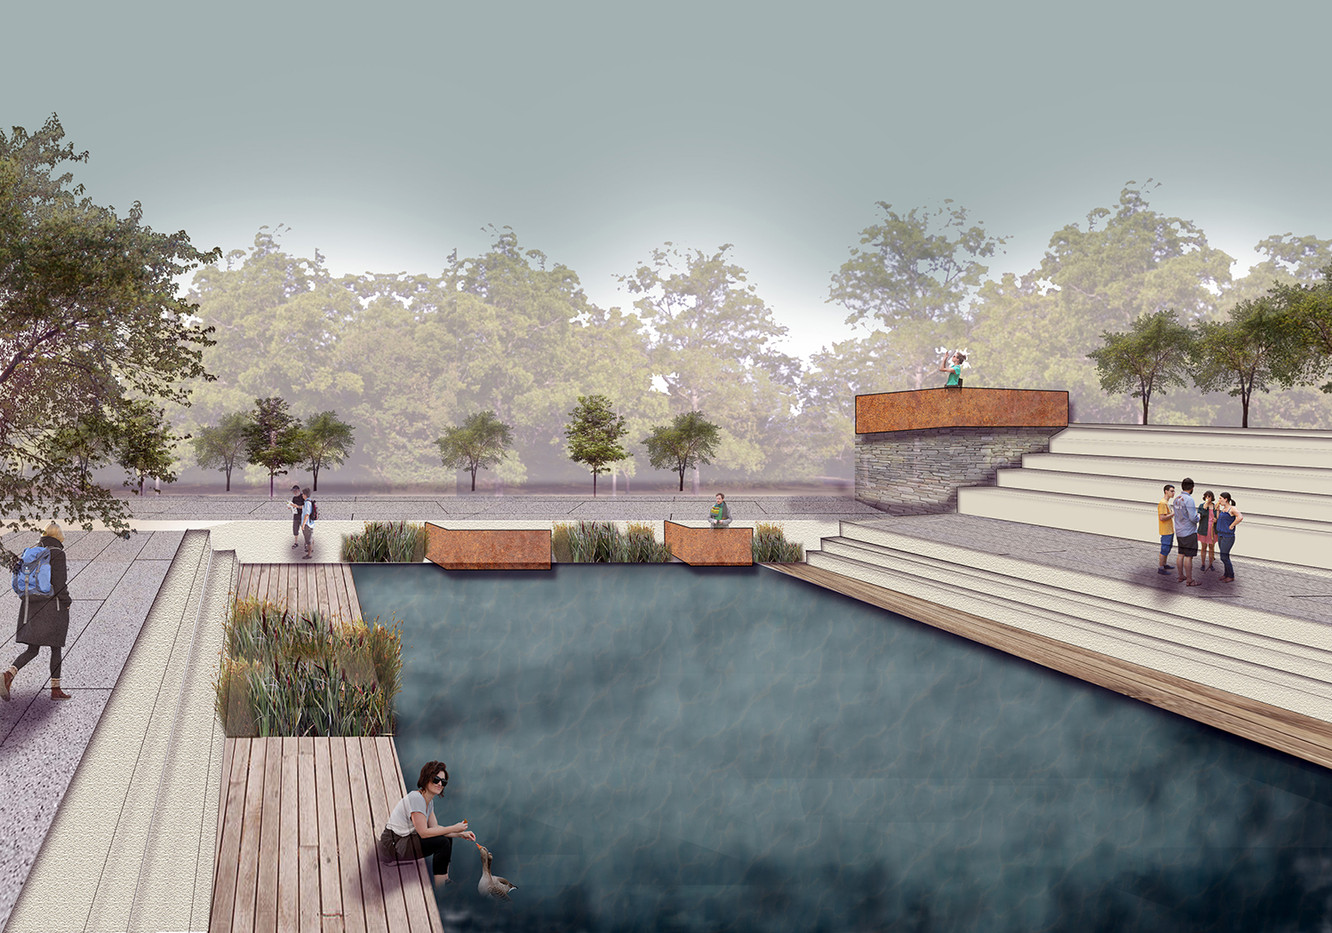 Garnock Valley: Retention Basin Sections, CAD and Photoshop, 2020